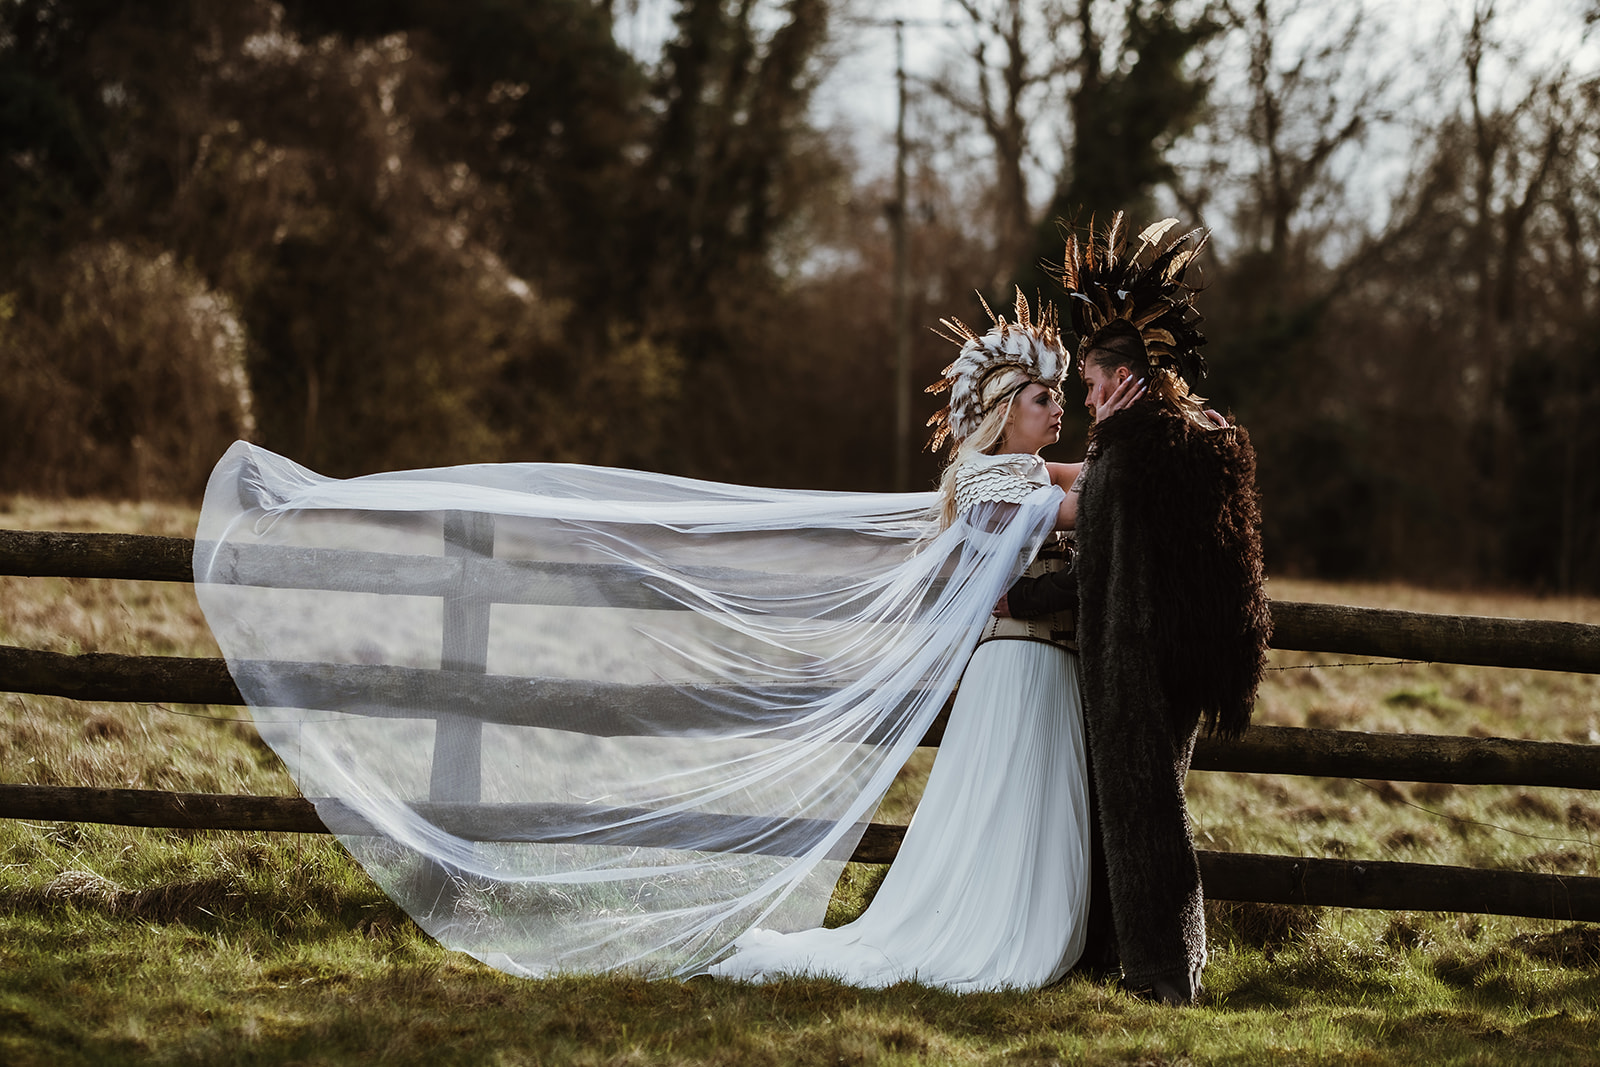 Game Of Thrones Wedding- Tom Jeavons Photography- Unconventional Wedding- Fantasy Wedding- Themed Wedding- unique wedding headpieces- wedding mohawk